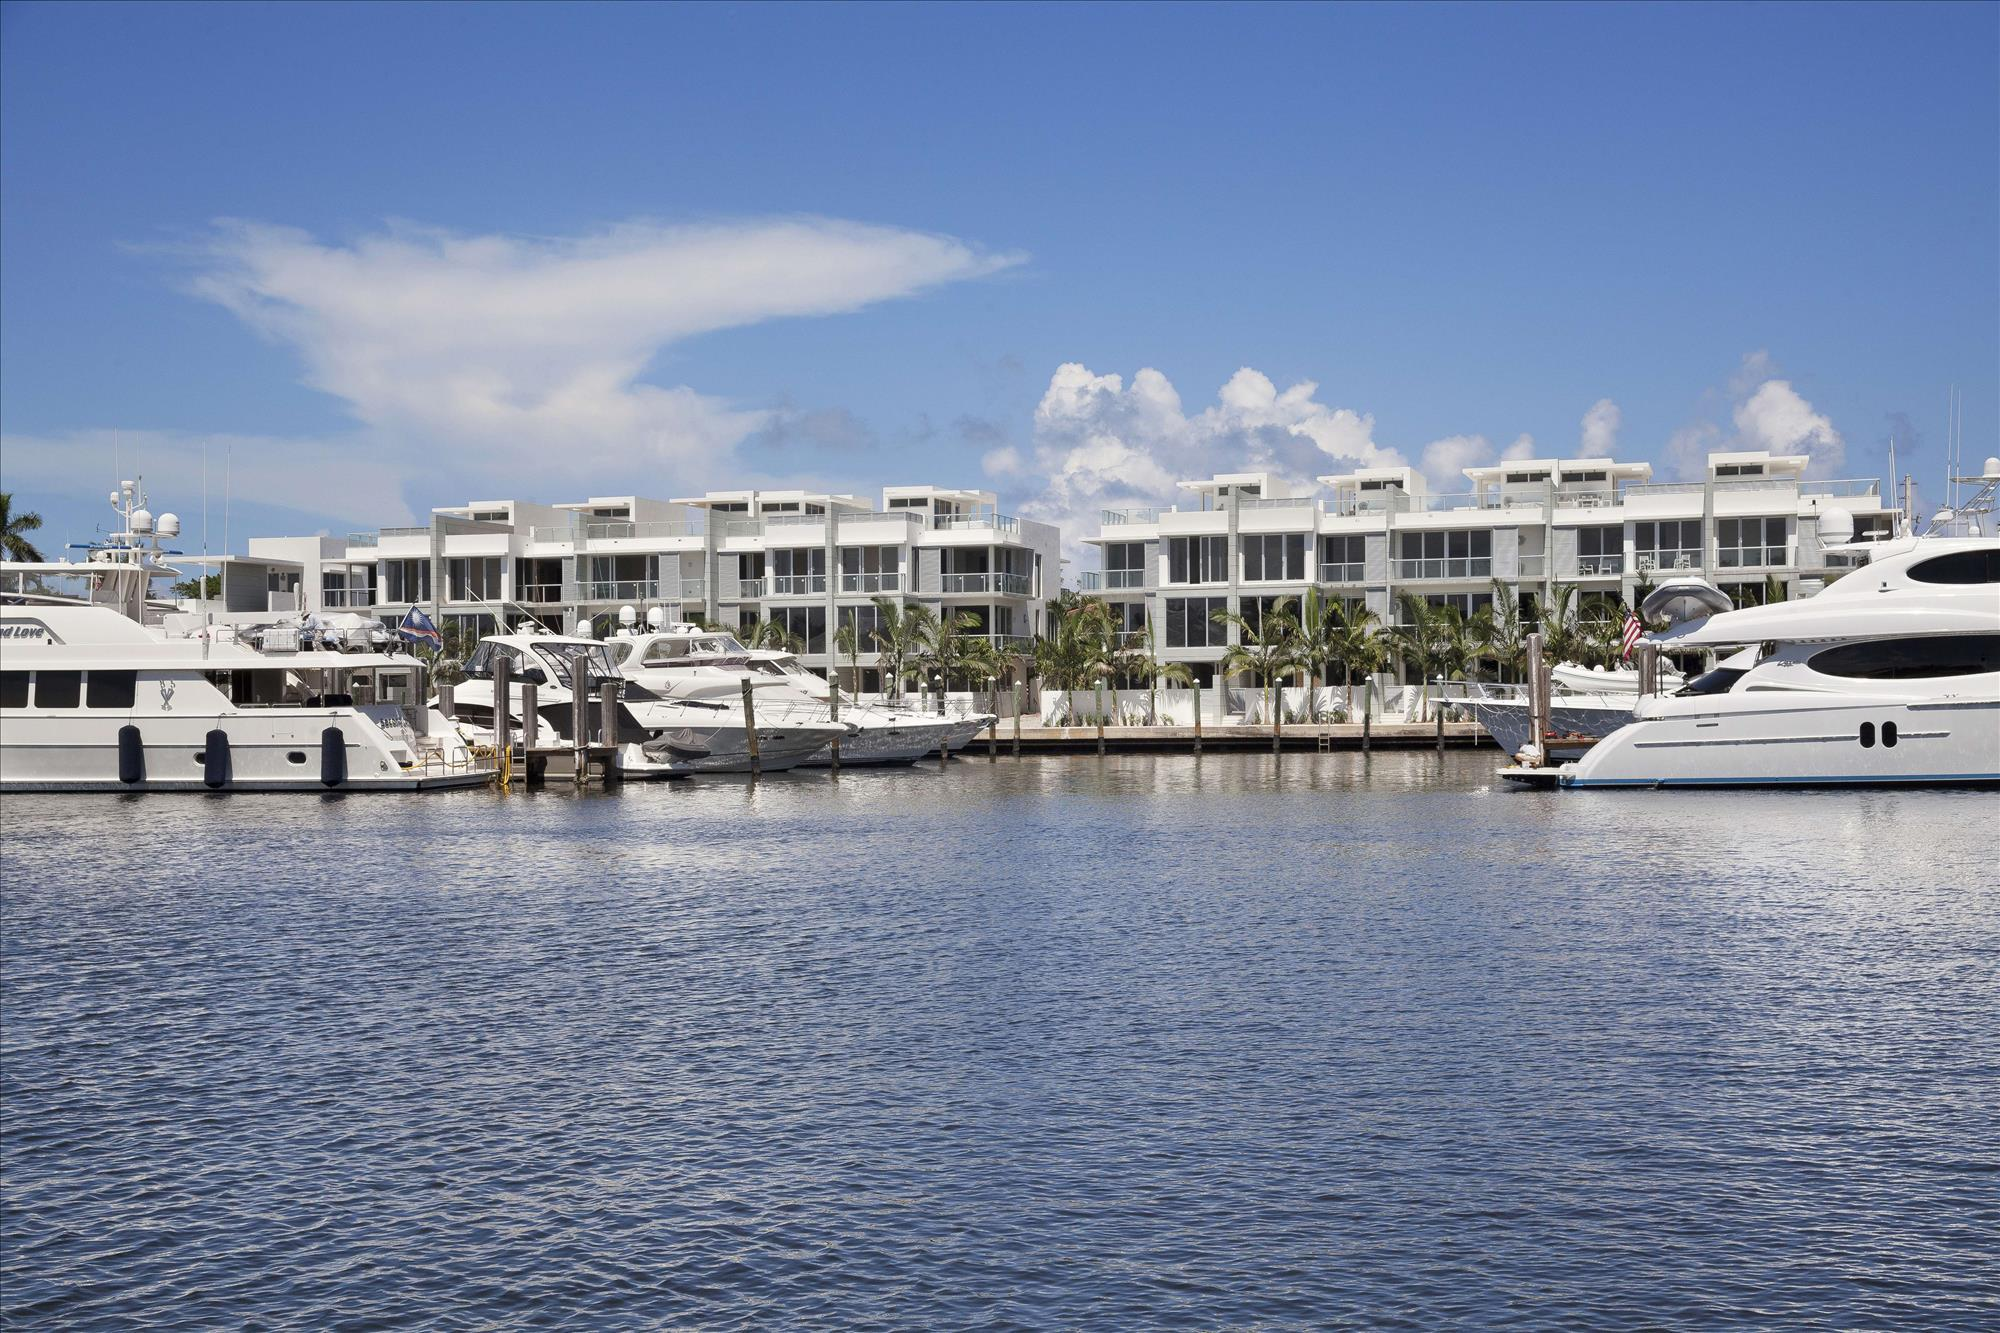 """Designed in an ultra-modern style, this private enclave of ten luxury residences lies within the Seagate Yach Club along the Intracoastal waterway, and boasts dramatic architectural flair.  The striking architectural statement made by the modern exterior is echoed within as well. Sweeping, open floorplans are complemented by floor-to-ceiling glass,clean lines and spectacular water views. The information herein is deemed reliable and subject to errors, omissions or changes without notice.  The information has been derived from architectural plans or county records. Buyer should verify all measurements. DISCLAIMER: The written and verbal information provided including but not limited to prices, measurements, square footages, lot sizes, calculations and statistics have been obtained and conveyed from third parties such as the applicable Multiple Listing Service, public records as well as other sources. All information including that produced by the Sellers or Listing Company are subject to errors, omissions or changes without notice and should be independently verified by any prospect for the purchase of a Property.  The Sellers and Listing Company expressly disclaim any warranty or representation regarding all information.  Prospective purchasers' use of this or any written and verbal information is acknowledgement of this disclaimer and that Prospects shall perform their own due diligence.  Prospective purchasers shall not rely on any written or verbal information provided when entering a contract for sale and purchase.  Some affiliations may not be applicable to certain geographic areas. If your property is currently listed, please do not consider this a solicitation. In the event a Buyer defaults, no commission will be paid to either Broker on the Deposits retained by the Seller.  """"No Commissions Paid until Title Passes.""""  Copyright 2018 Listing Company. All Rights Reserved."""